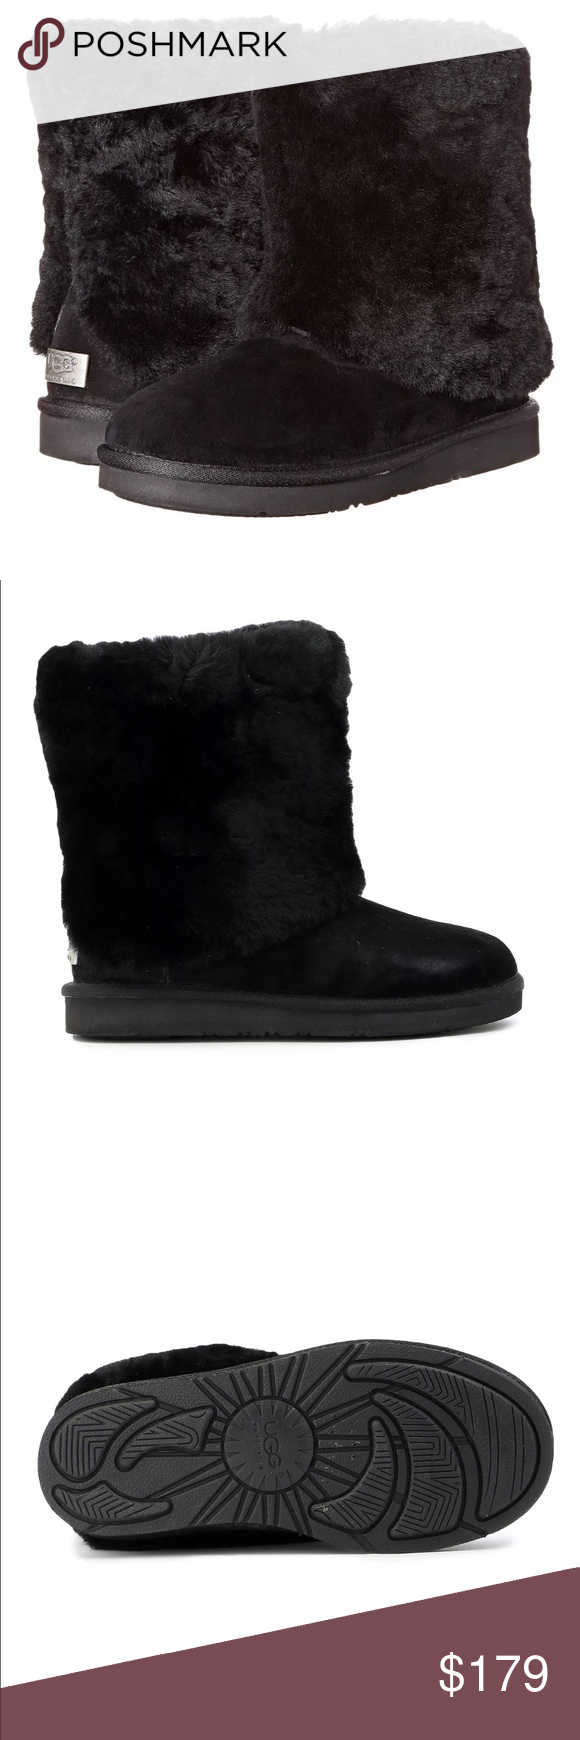 bca53cae5f2 UGG Australia Patten Shearling & Suede Boots Black NEW WOMEN UGG ...